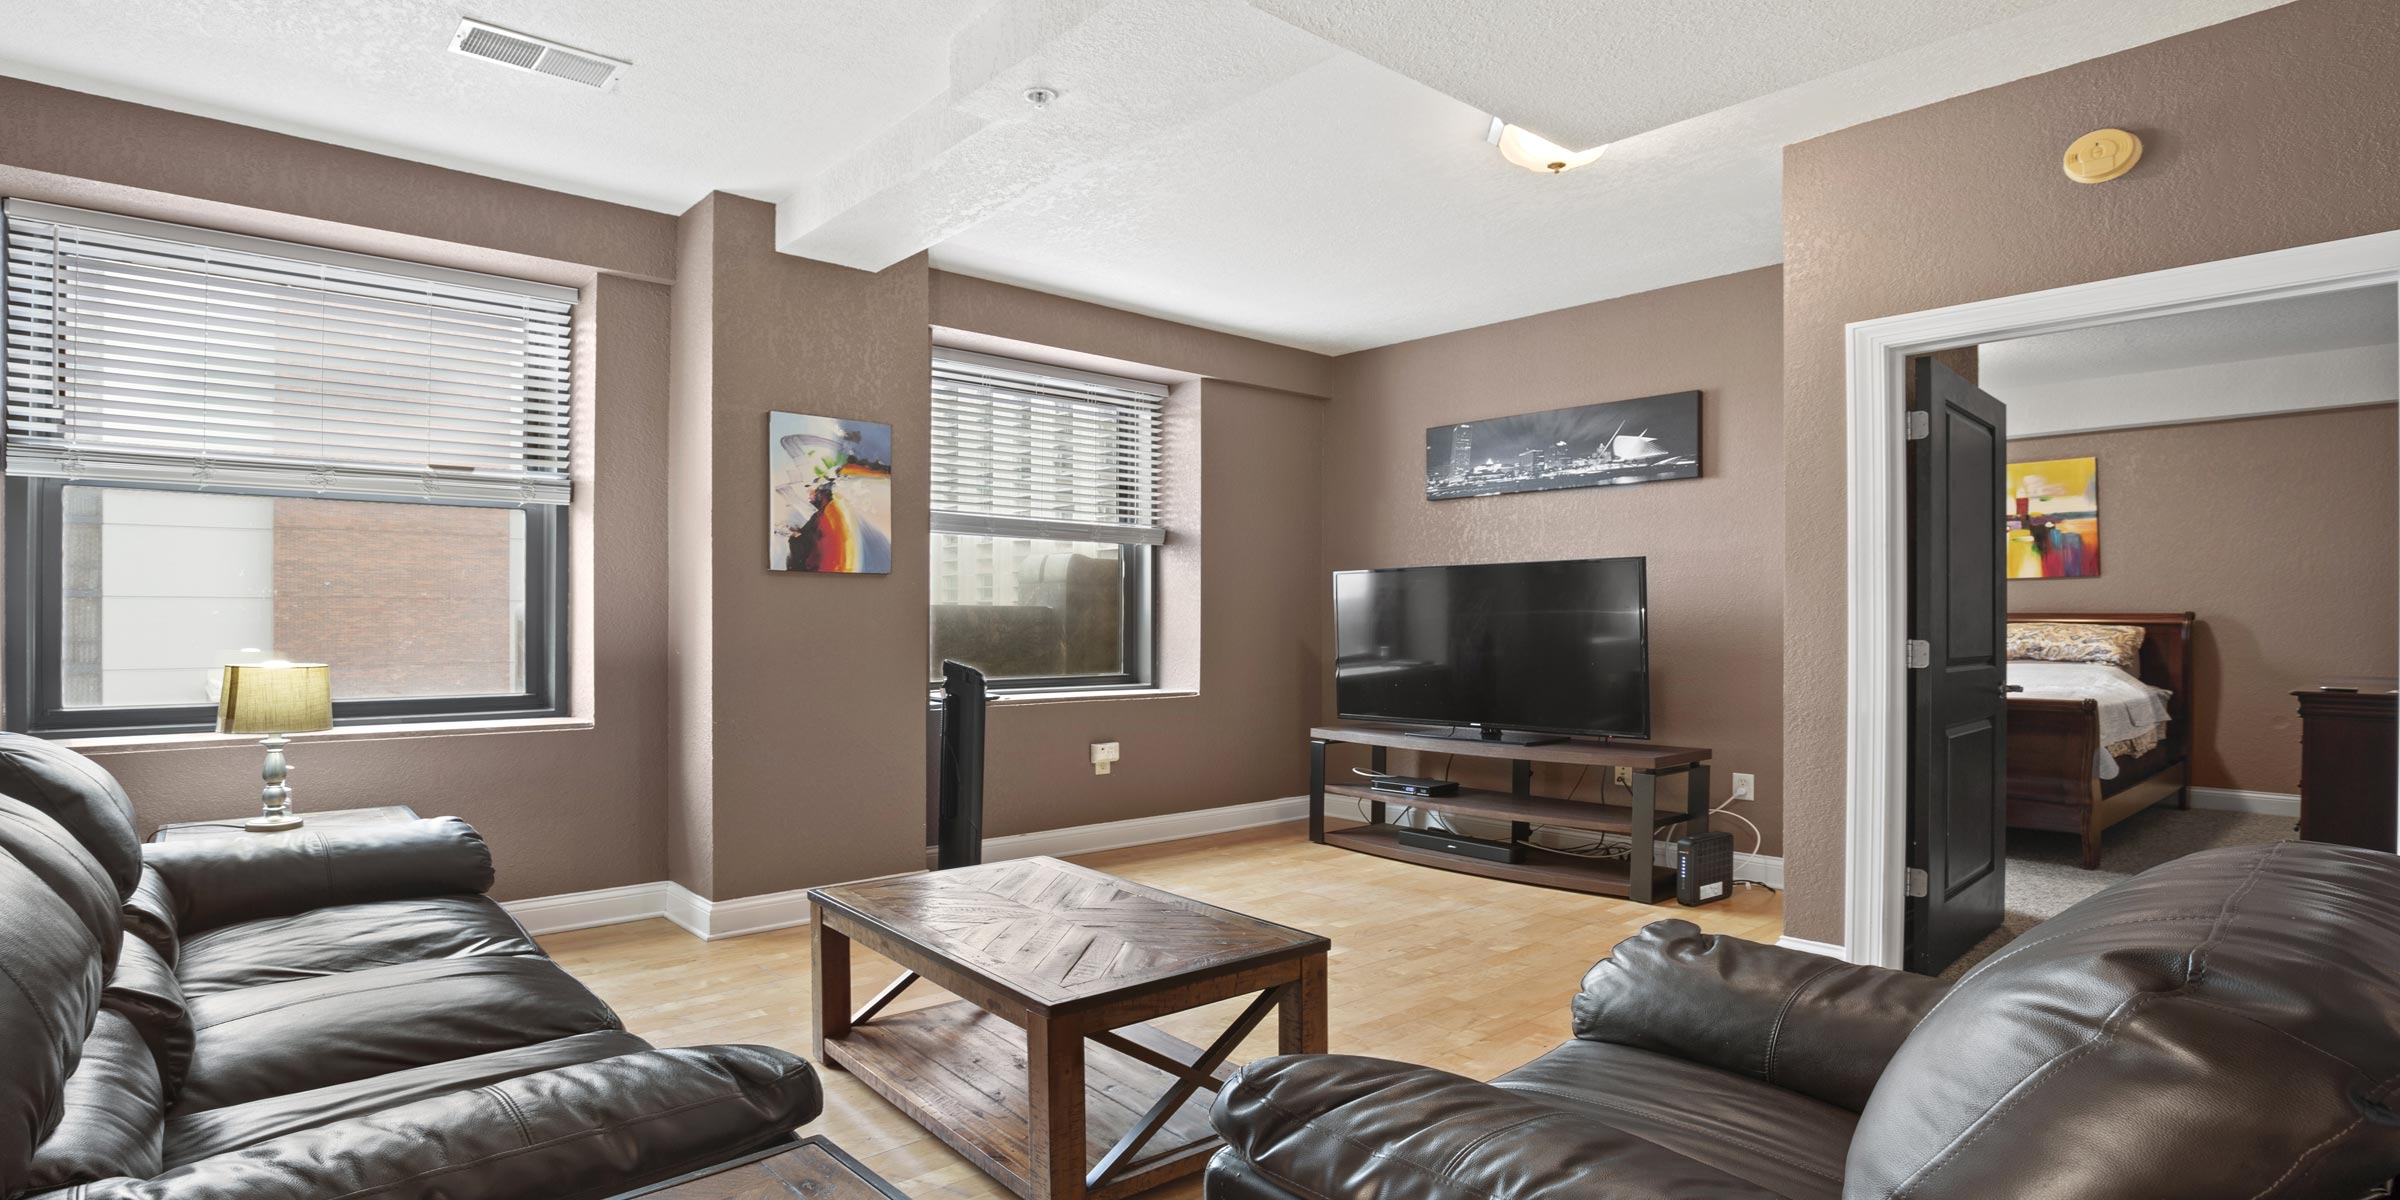 606 W. Wisconsin Ave., Unit 301. Photo courtesy of Corley Real Estate.